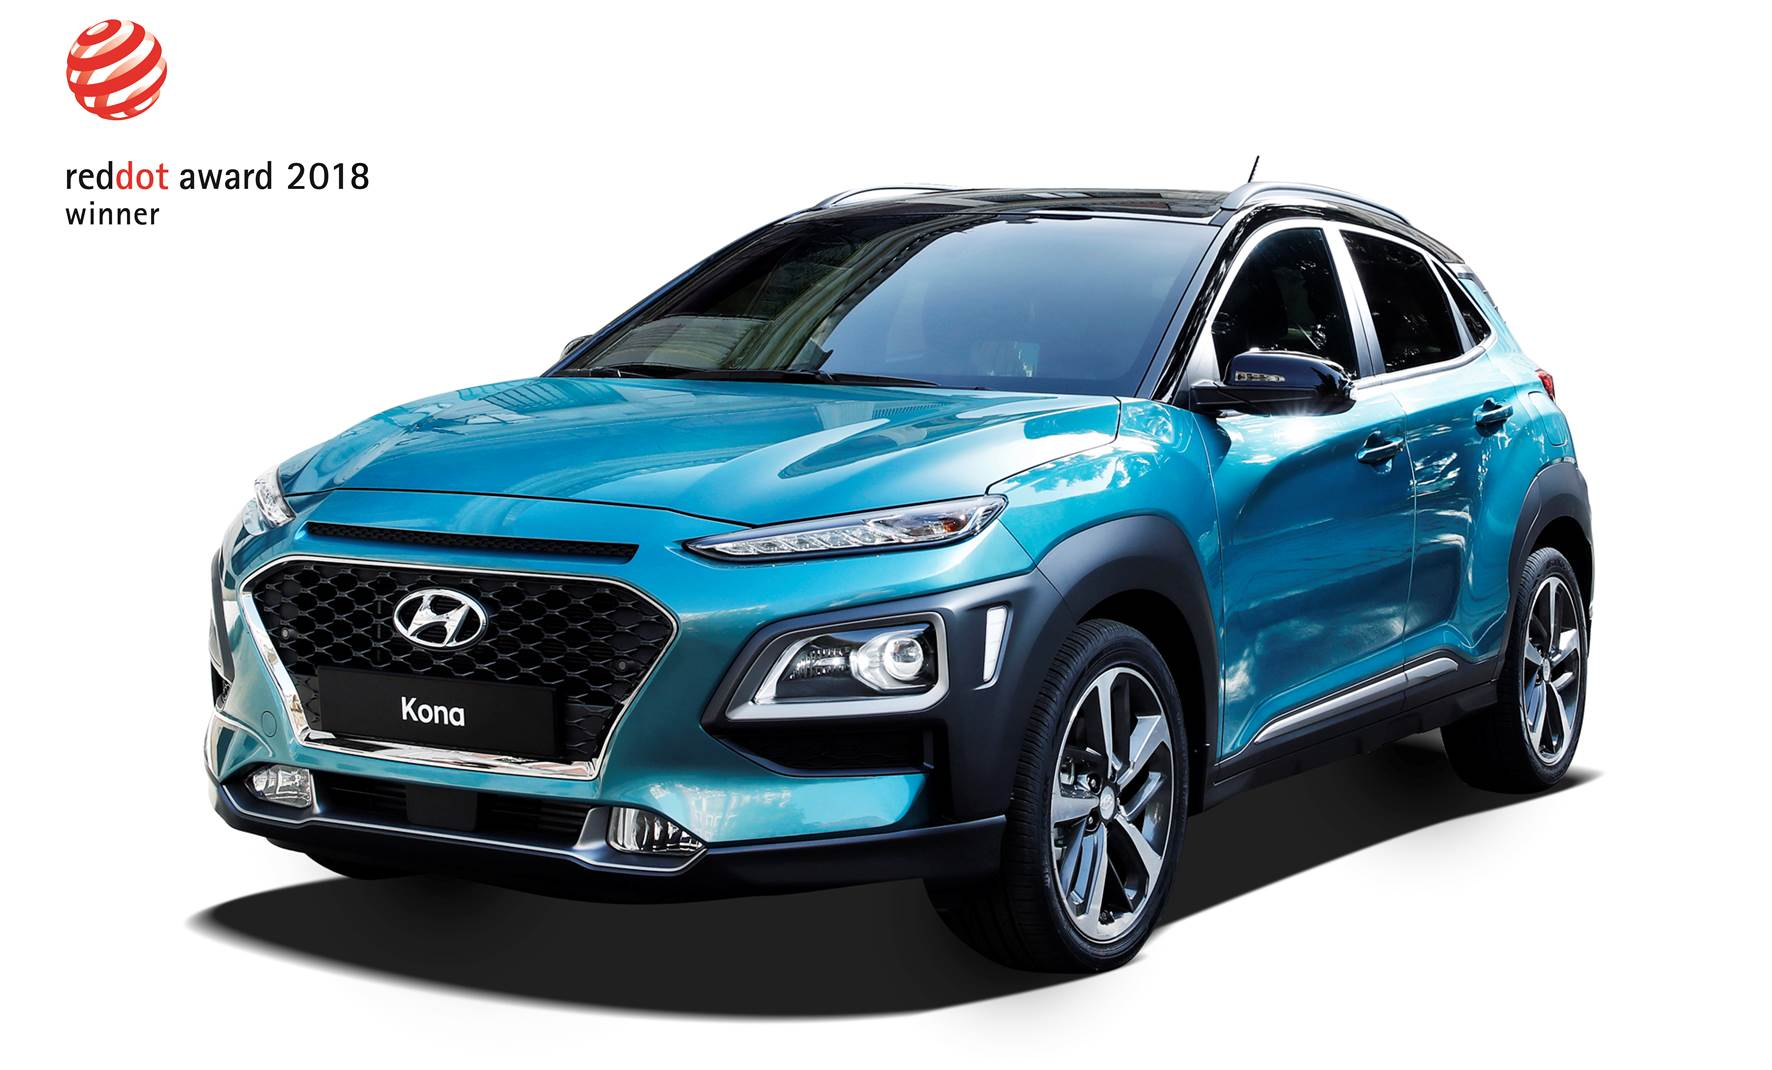 Hyundai Kona Red Dot Design Award